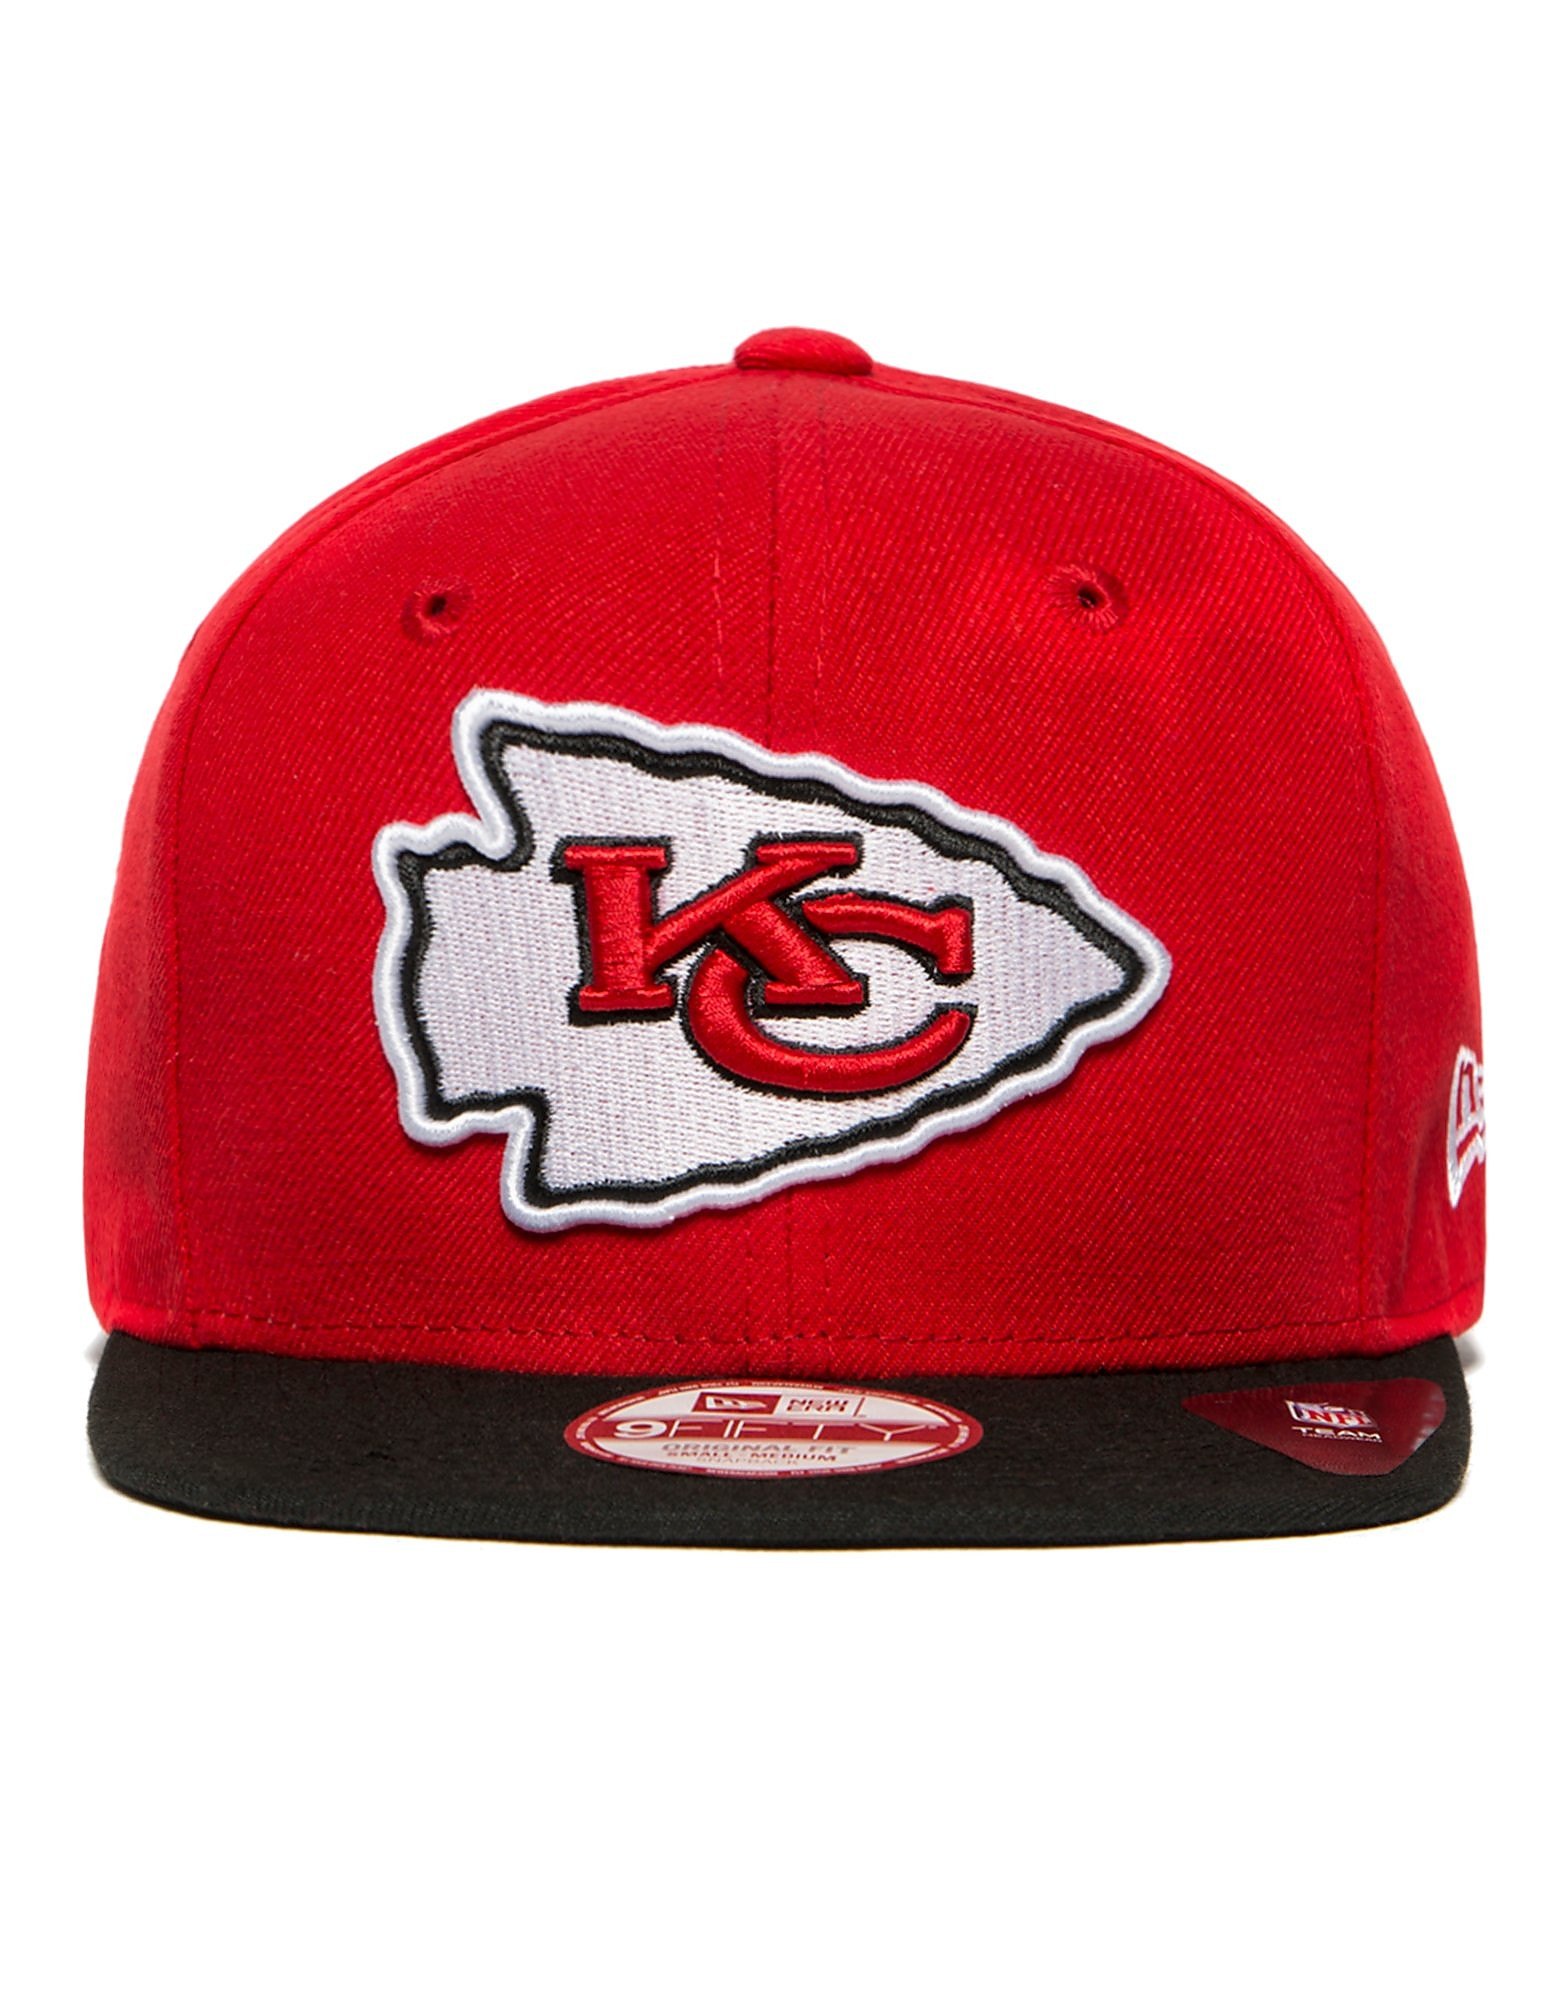 New Era NFL Kansas City Chiefs 9FIFTY Snapback Cap